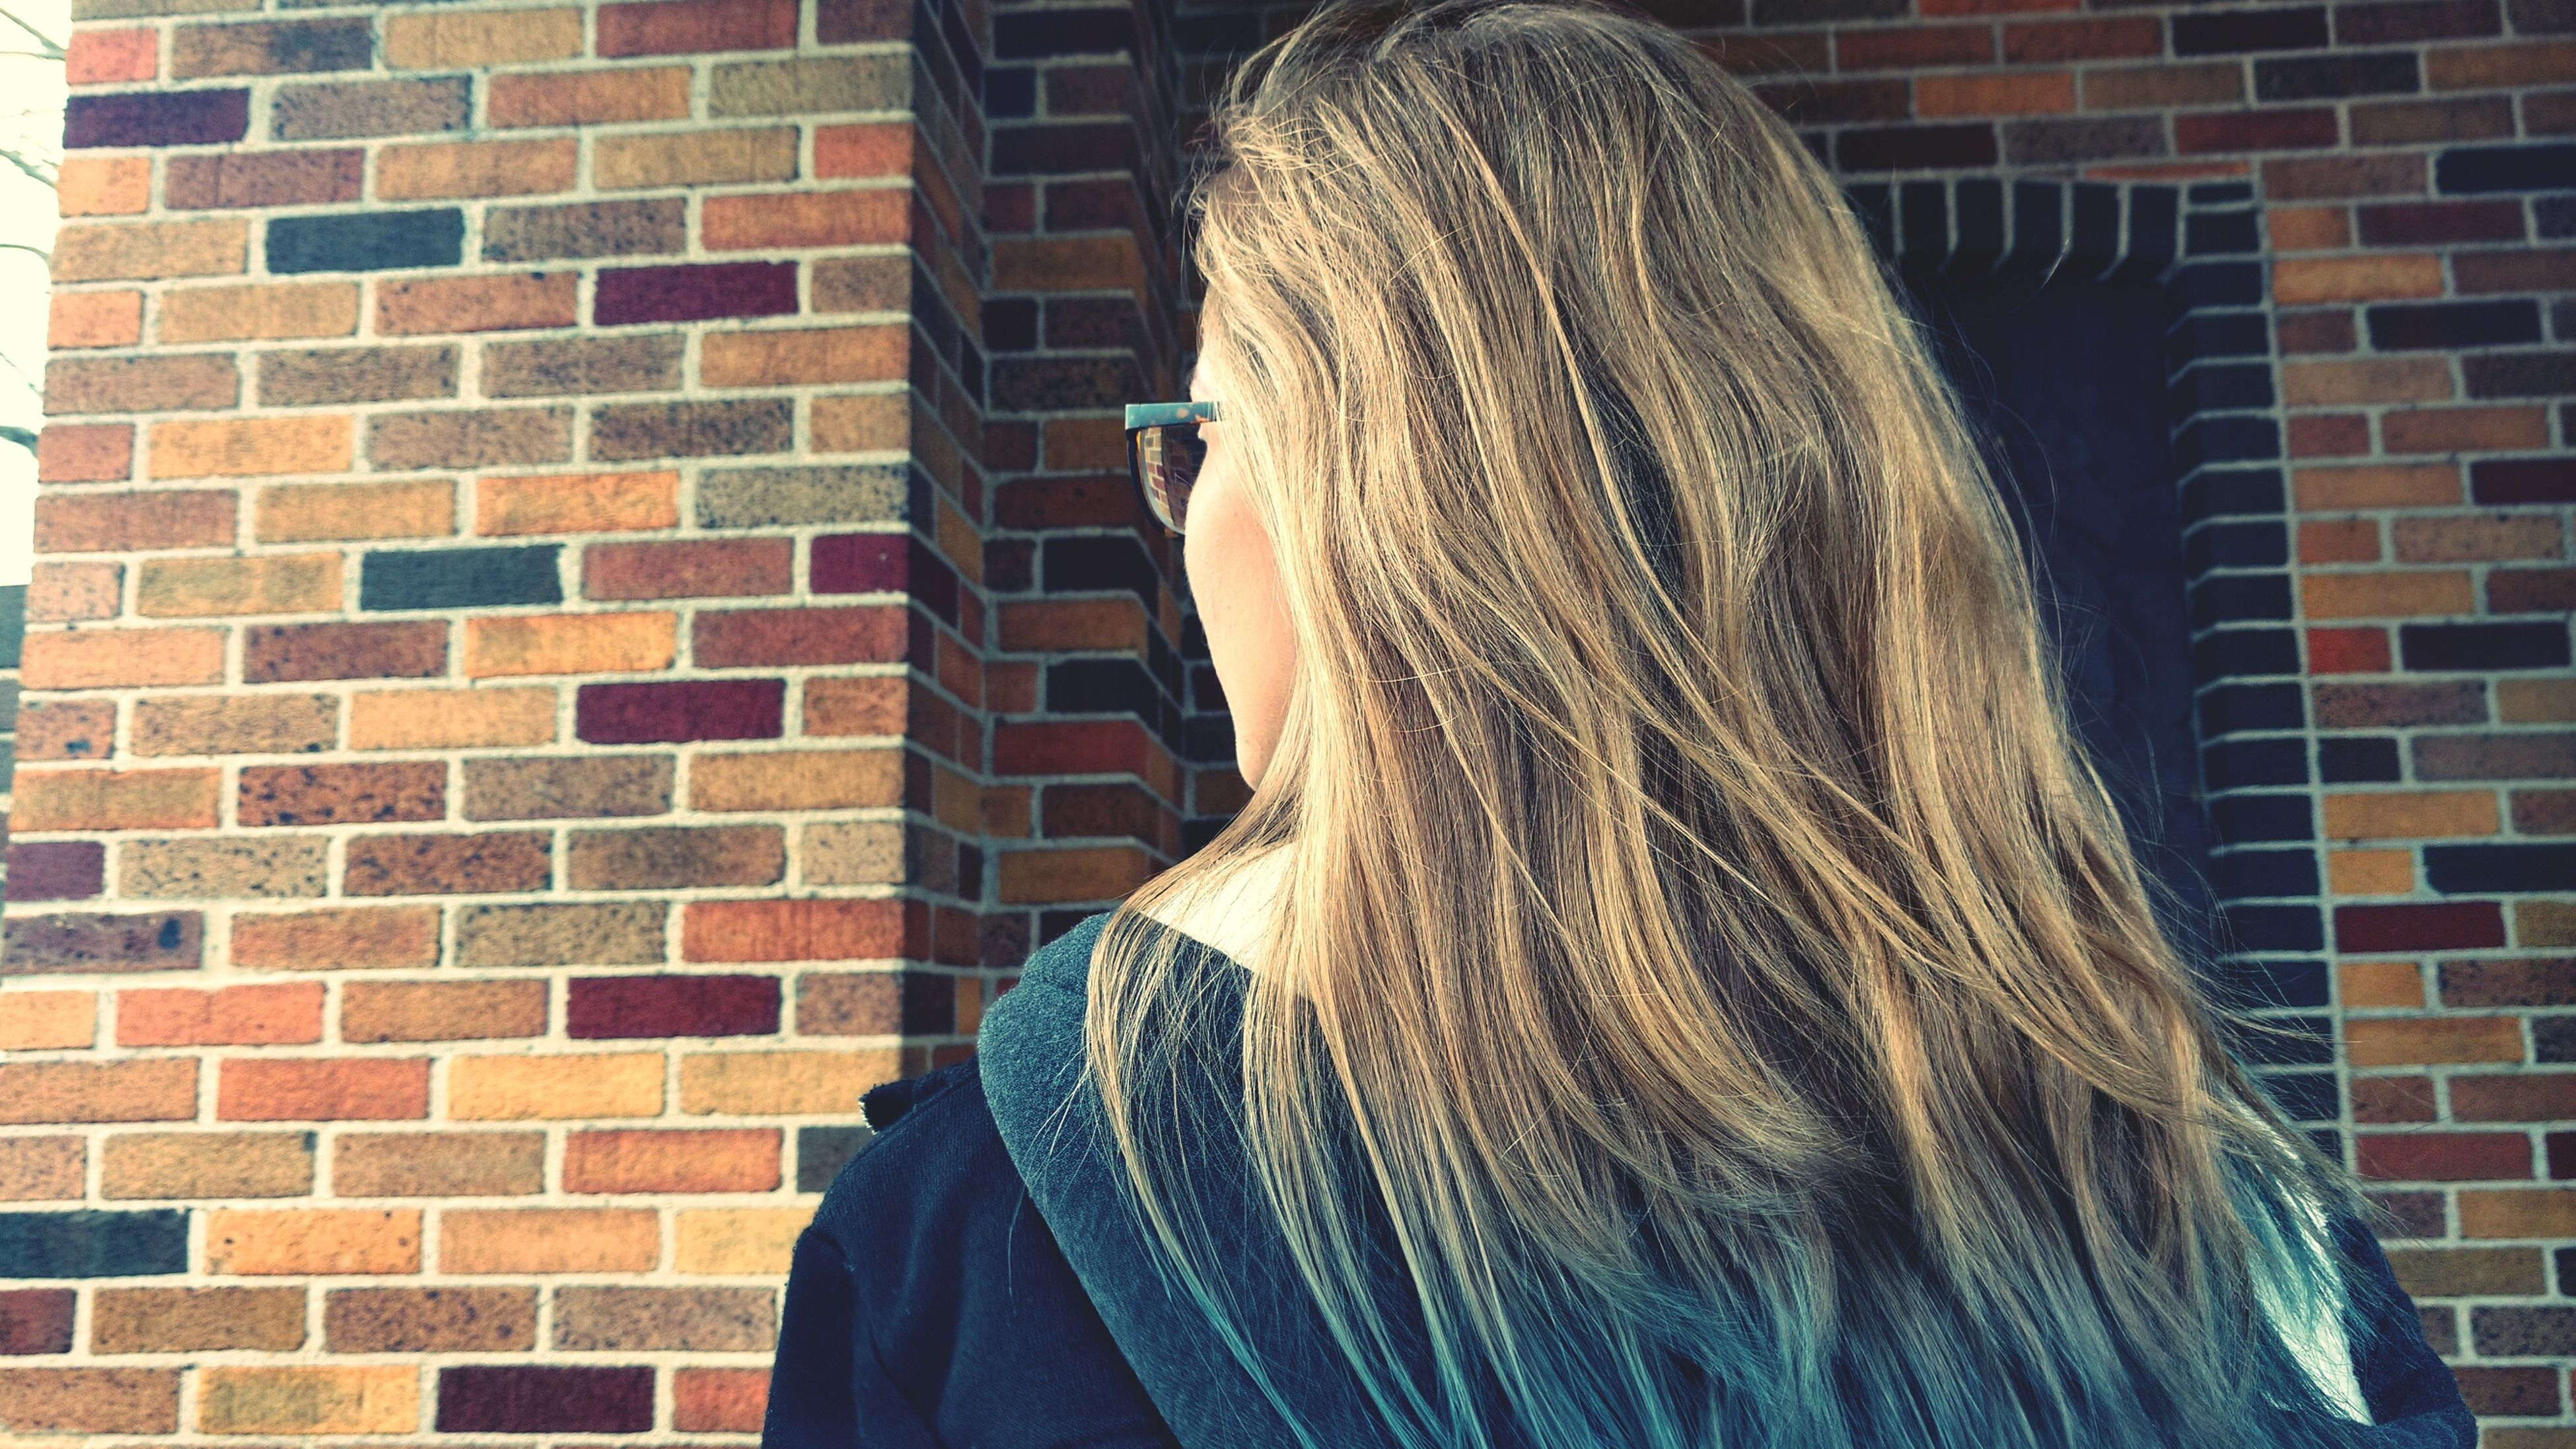 brick wall, lifestyles, real people, headshot, one person, women, day, close-up, outdoors, young women, people, adult